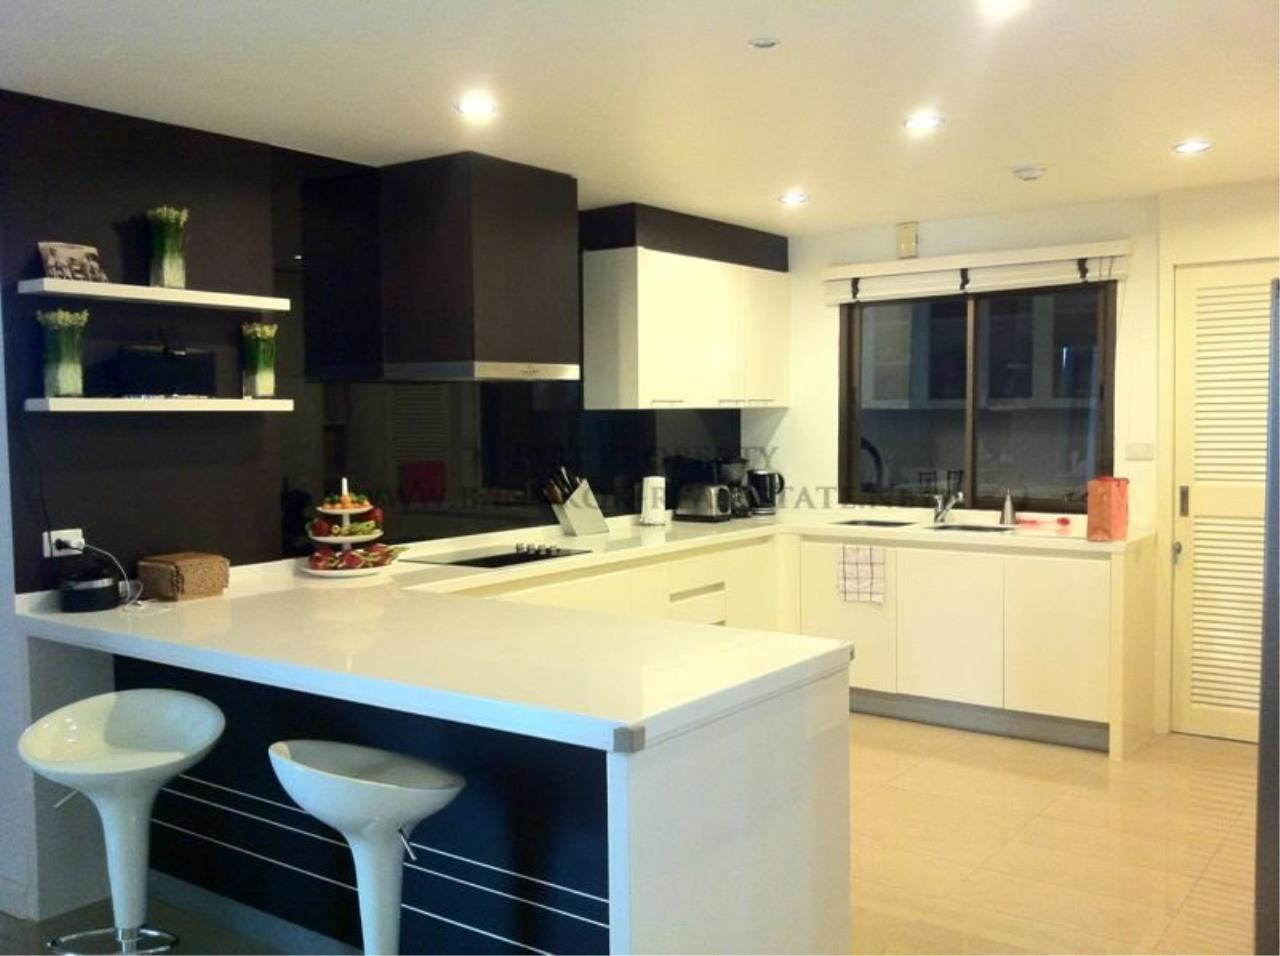 Piri Property Agency's Baan Ananda - Luxurious and Spacious 3 plus 1 BR Condo for Sale 3